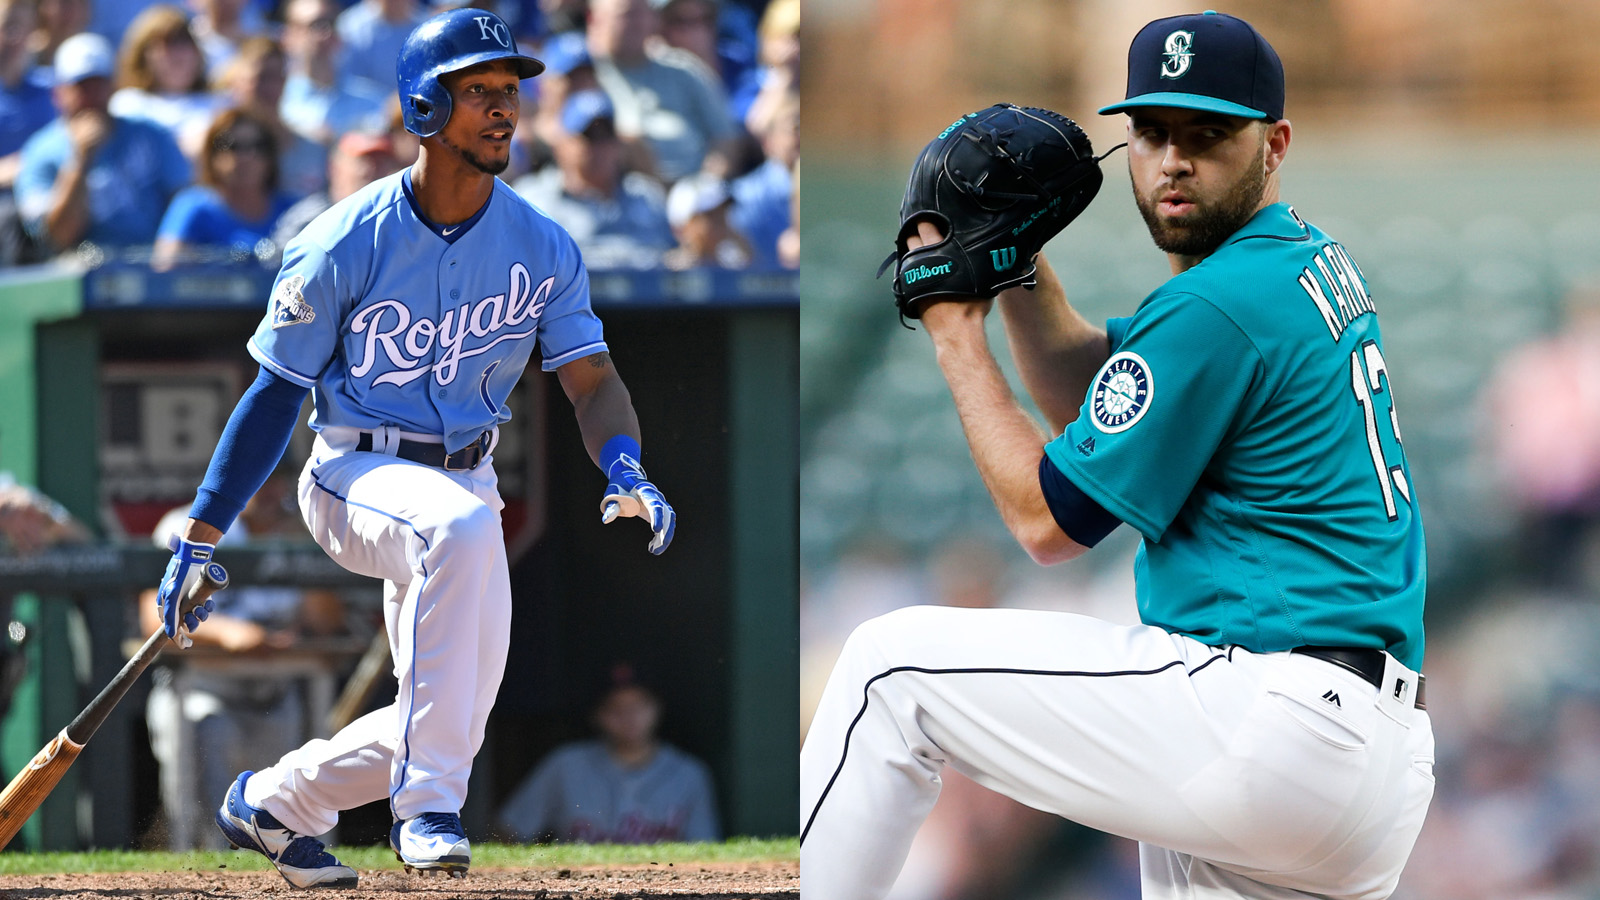 Royals trade Jarrod Dyson to Mariners for Nathan Karns